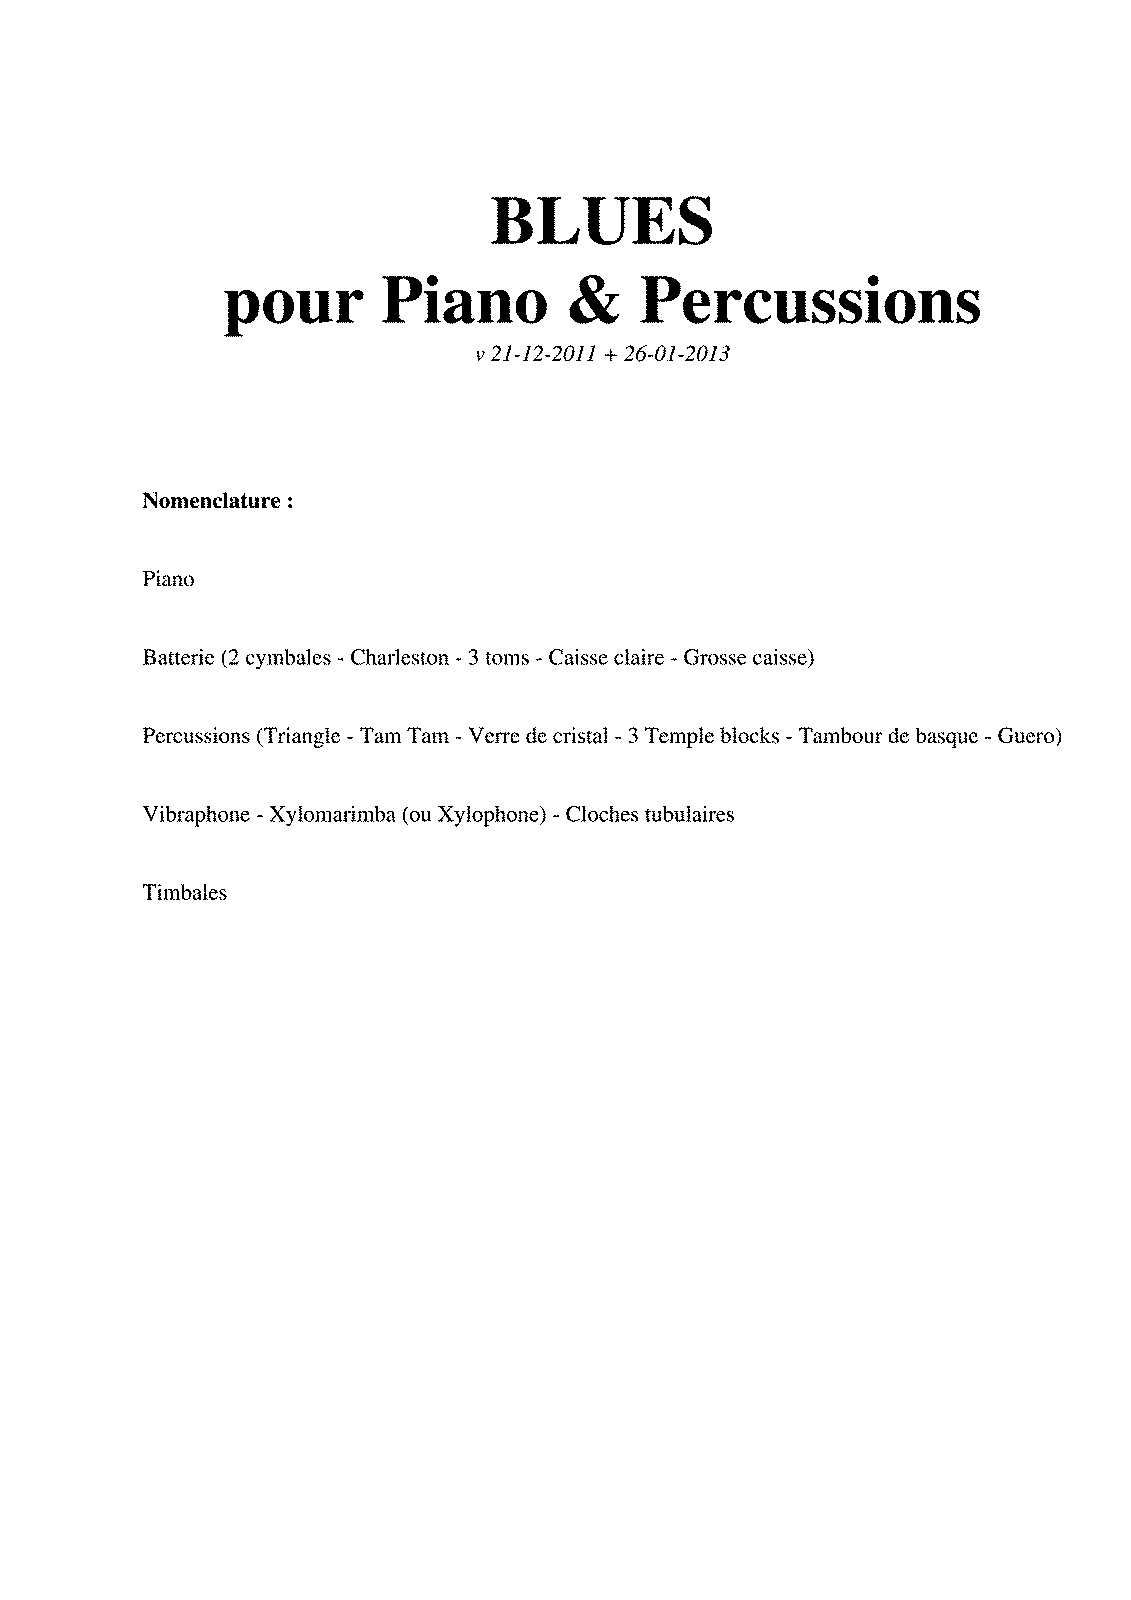 PMLP455035-BLUES pour Piano Percussions v26-01-2013.pdf